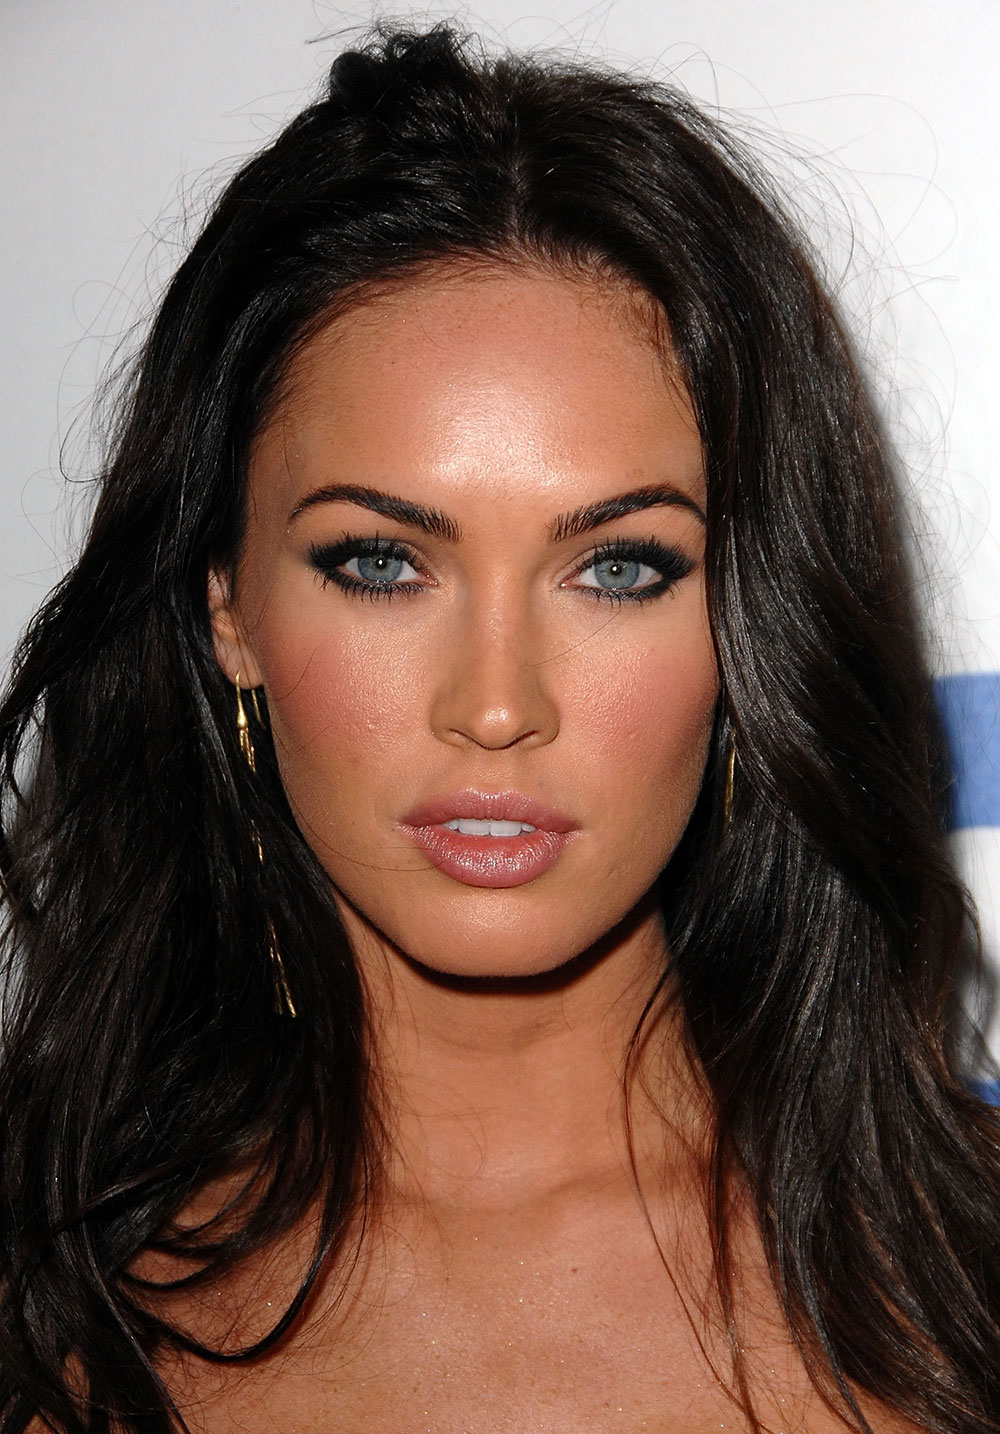 megan fox hair color. hot actress Megan Fox has